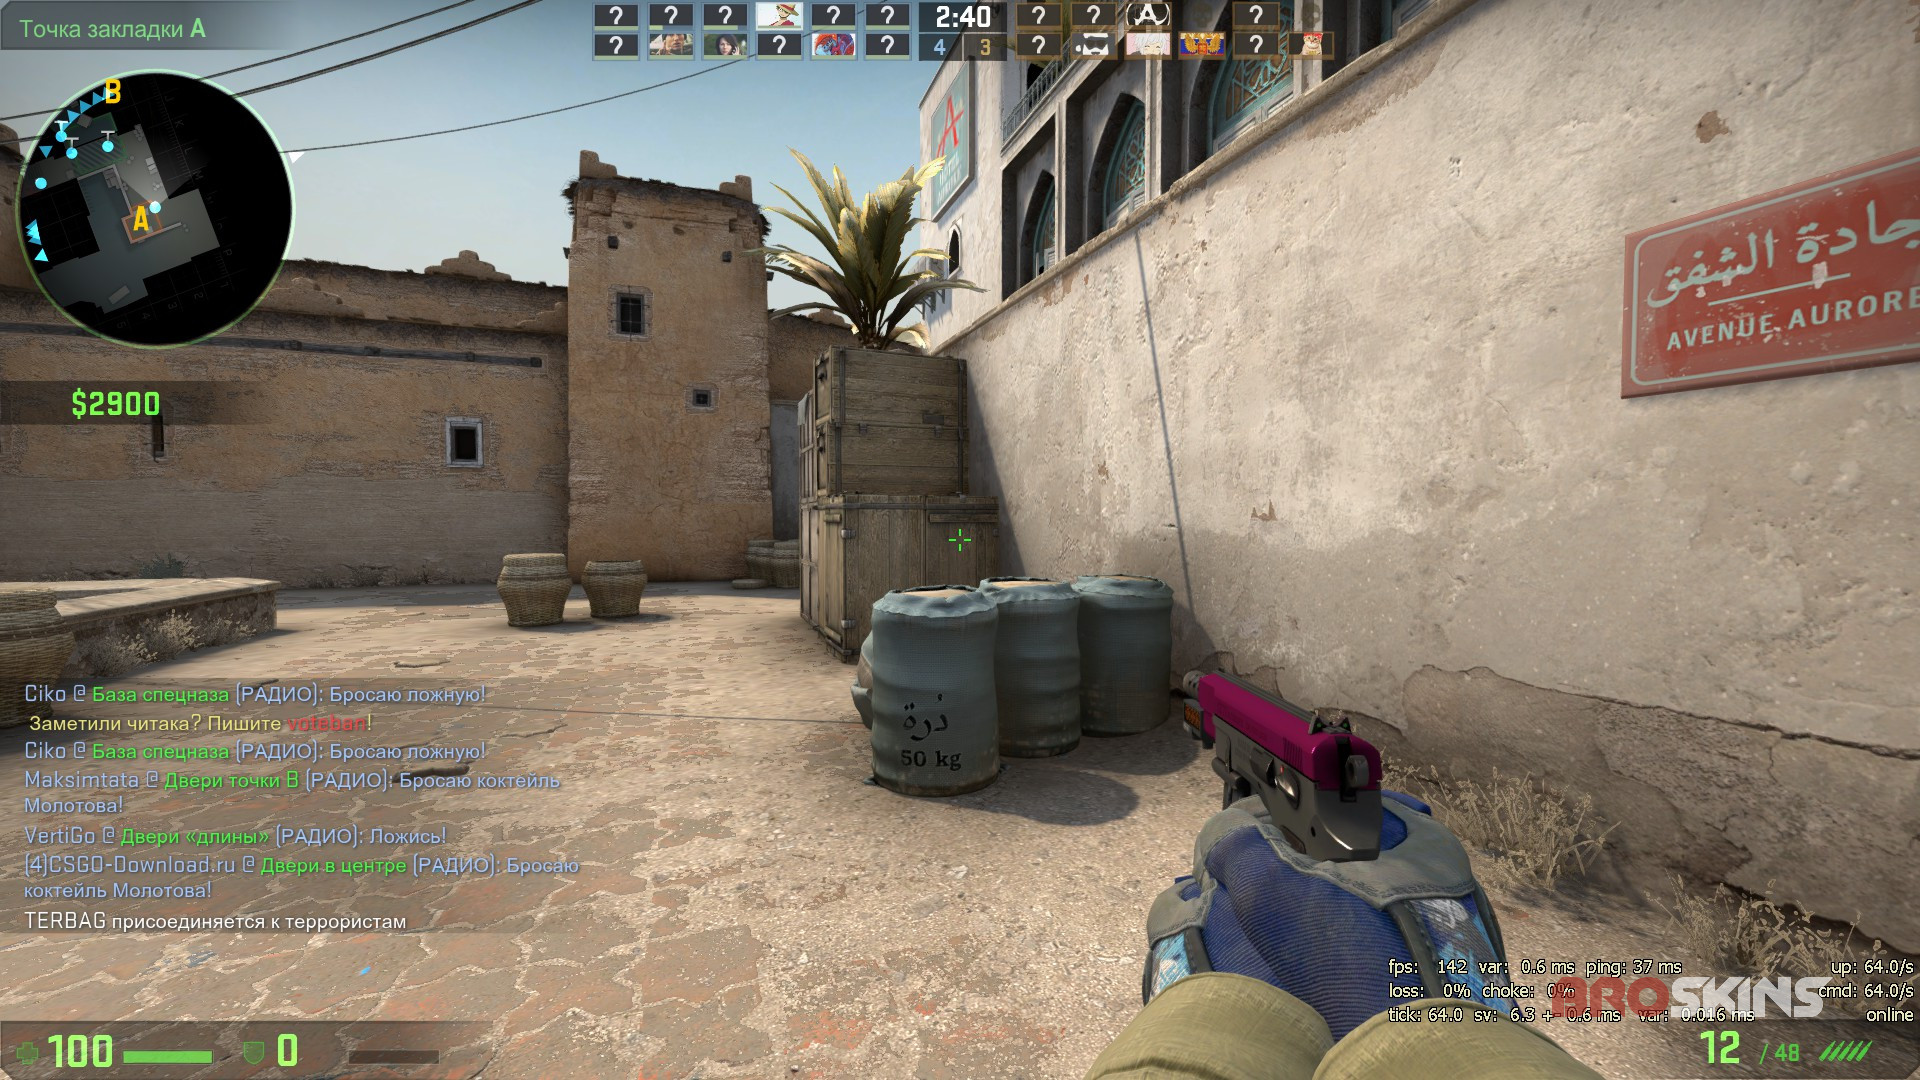 Specialist Gloves Mogul and CZ75-Auto The Fuschia Is Now